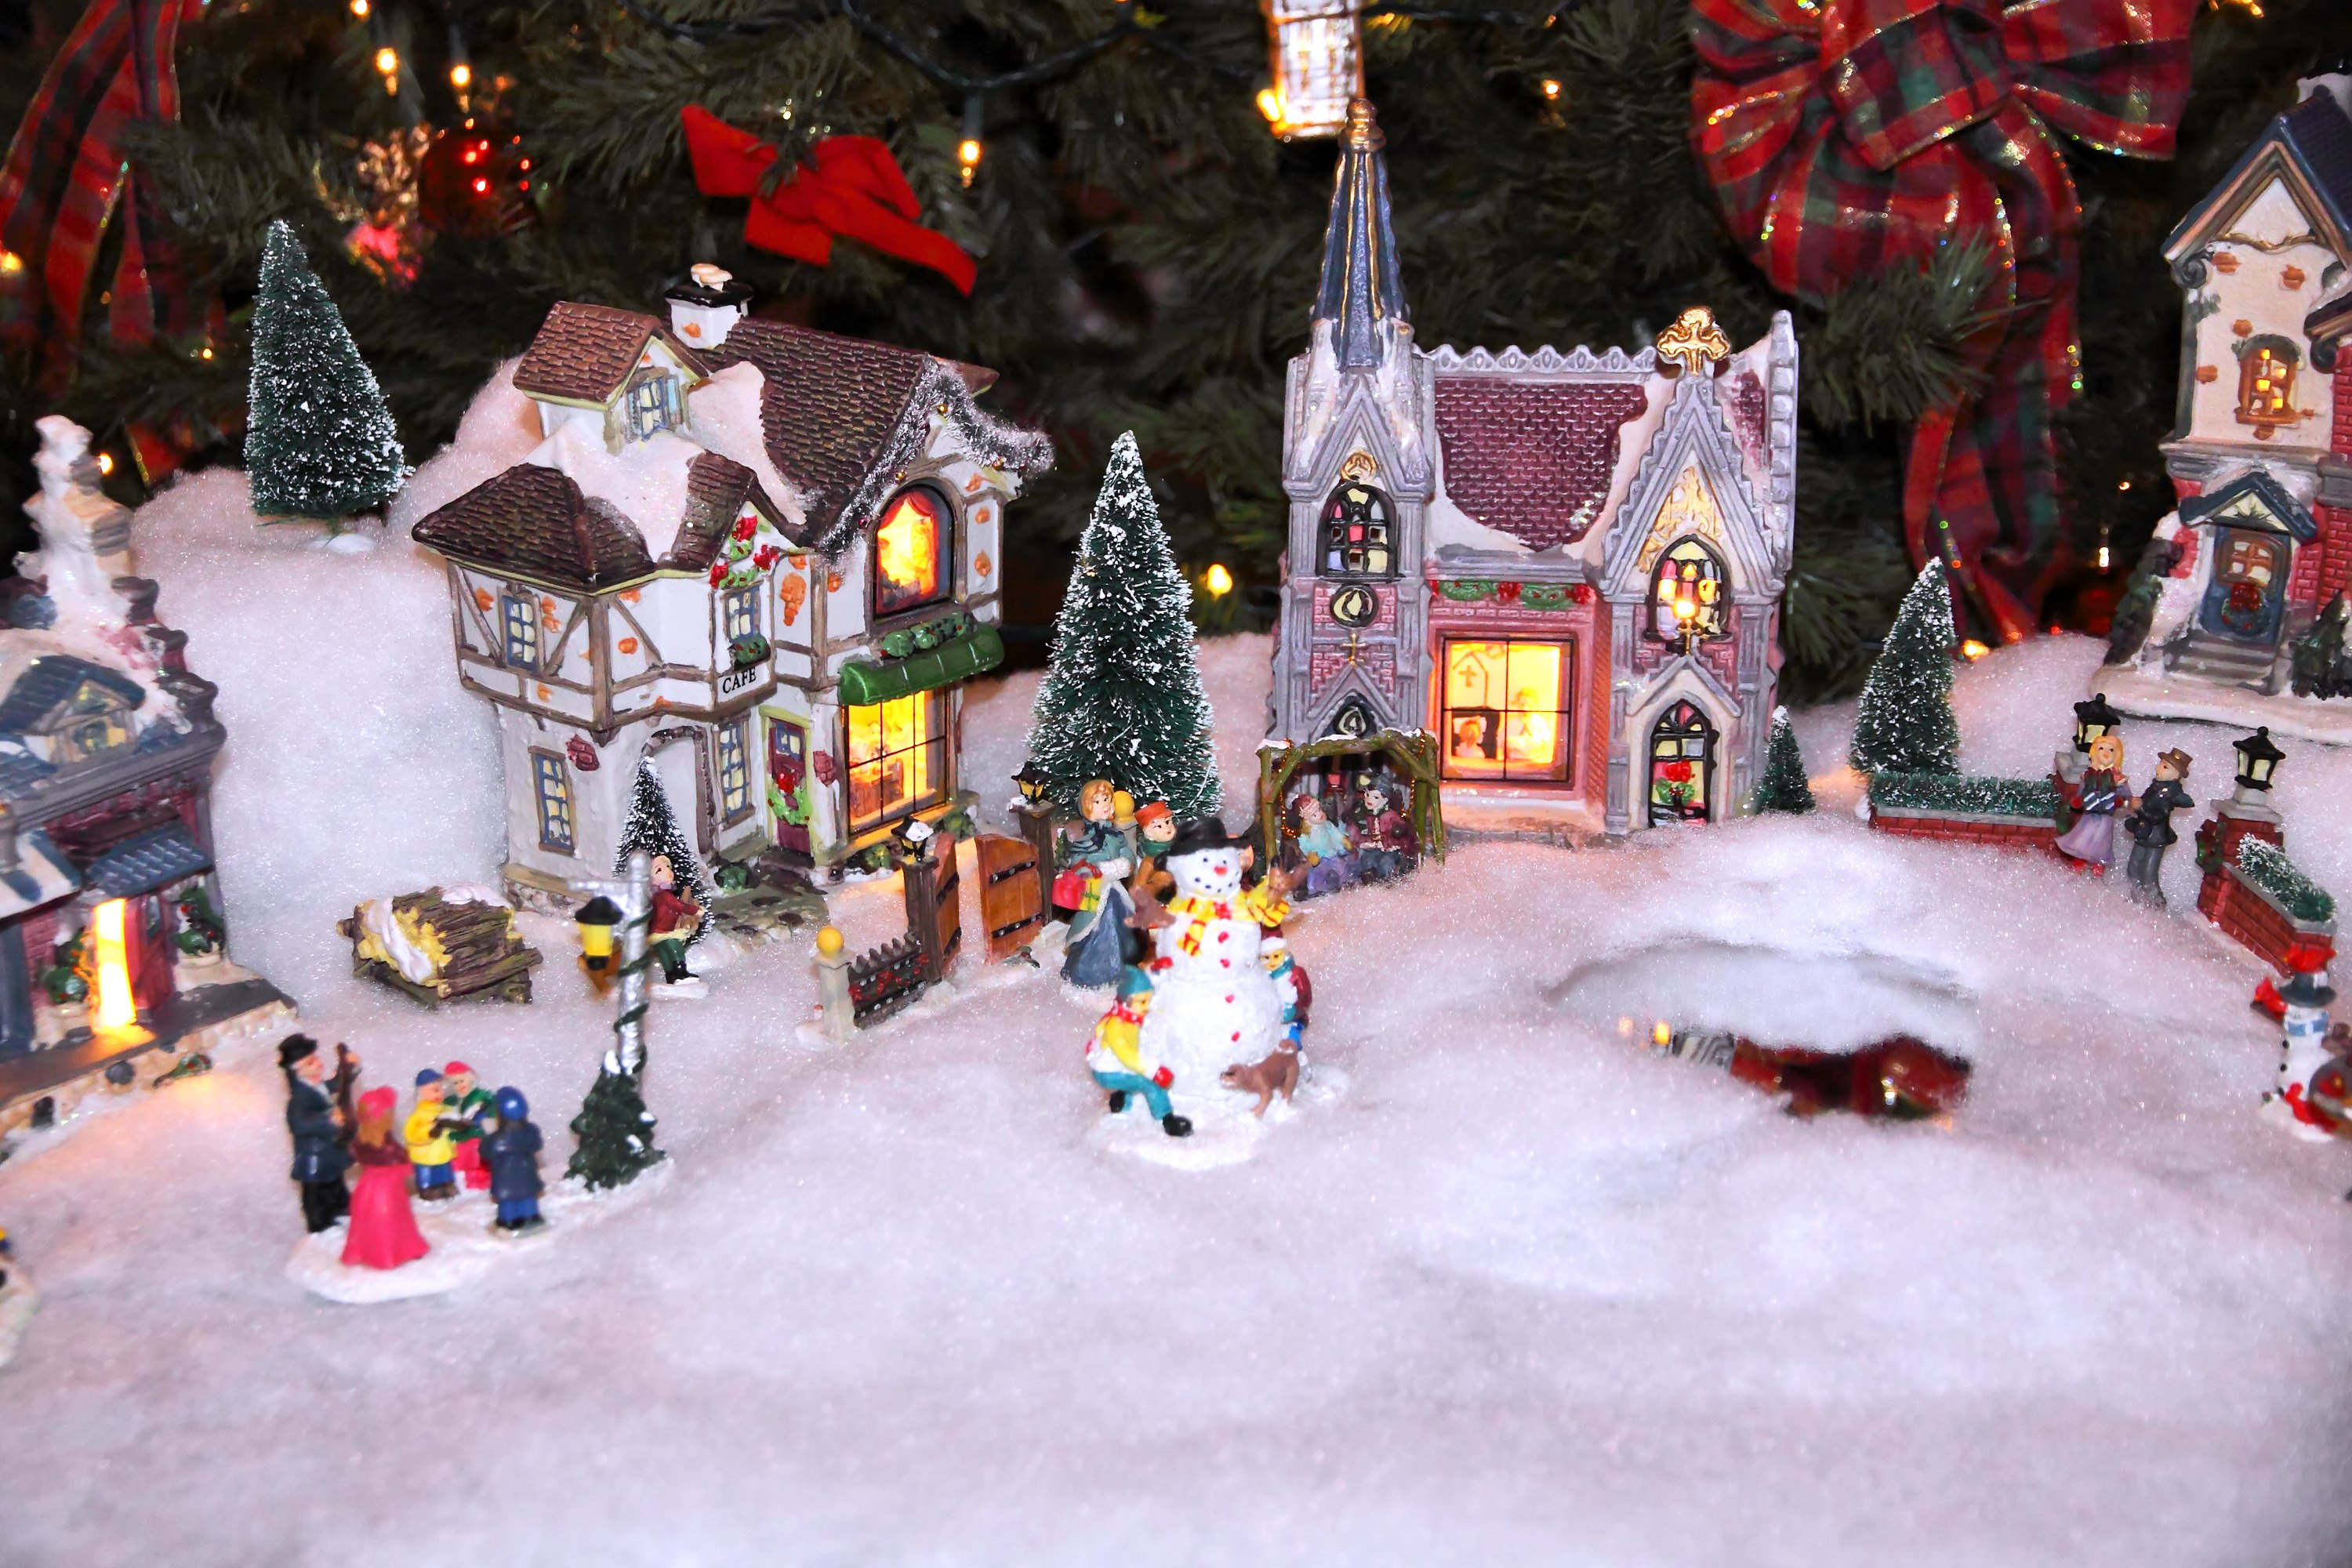 Christmas Village Setup Tips With Pictures EHow